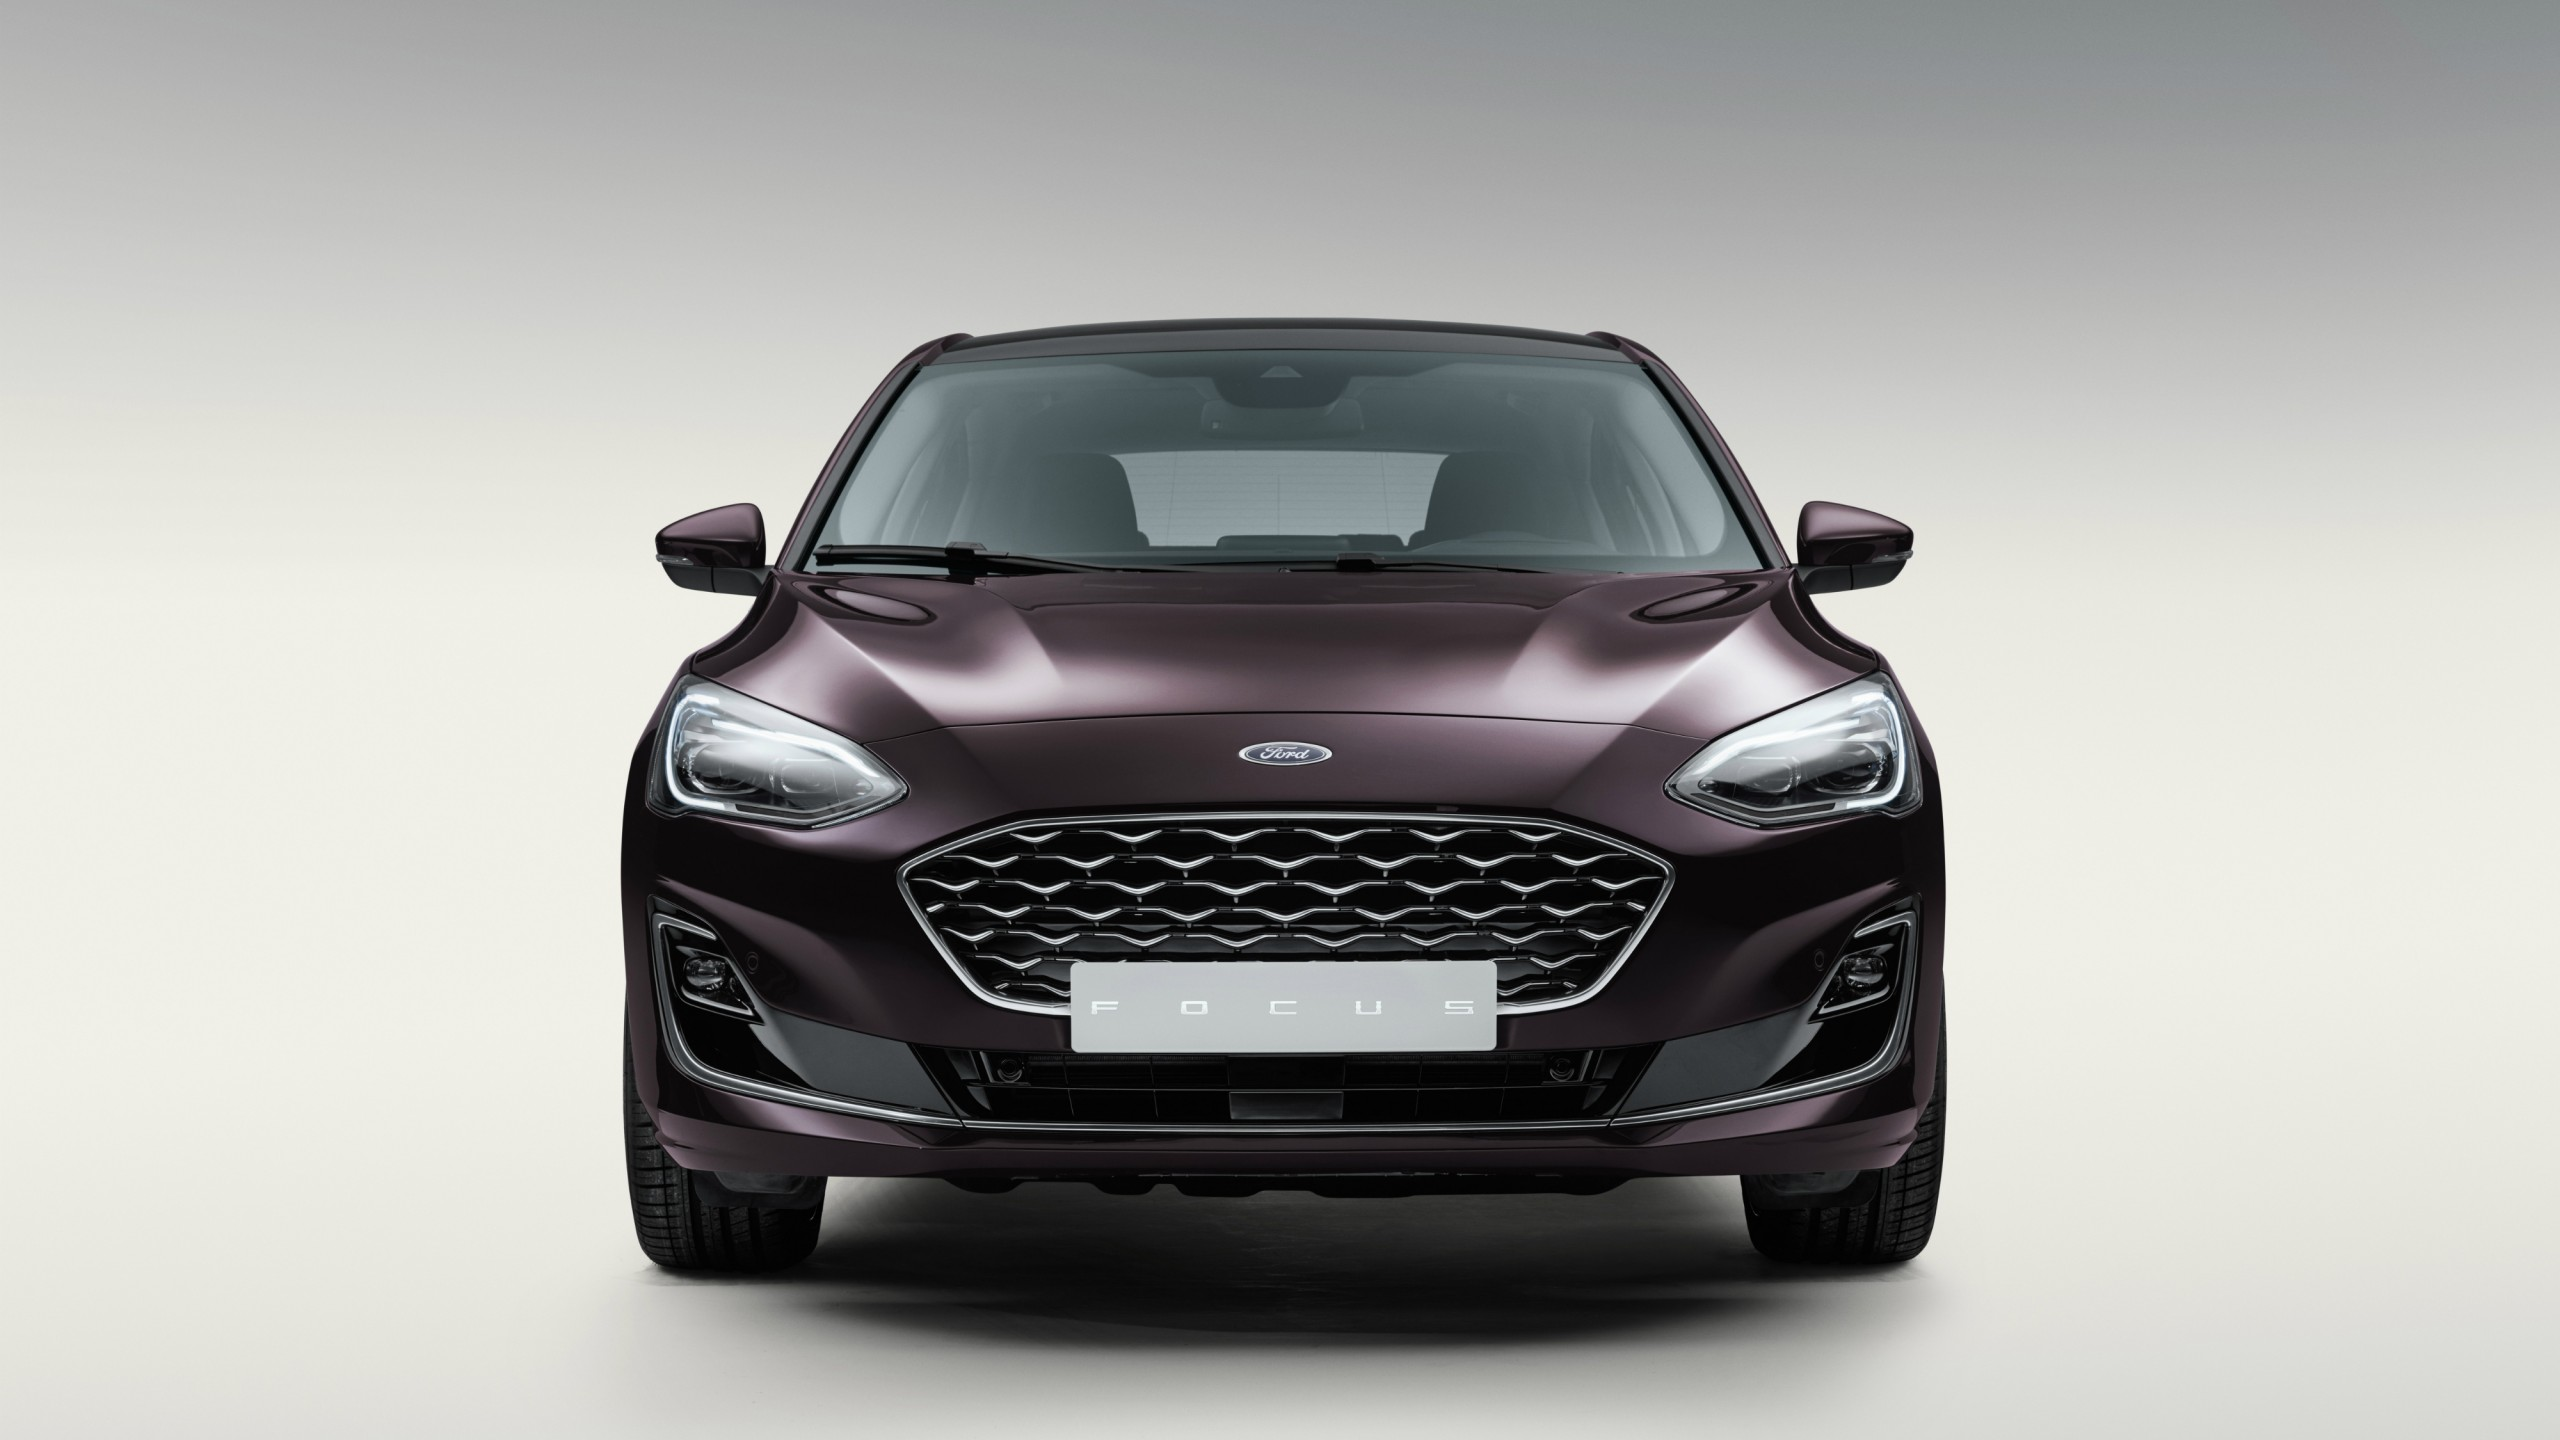 2018 ford focus vignale 4k wallpaper hd car wallpapers id 10148. Black Bedroom Furniture Sets. Home Design Ideas